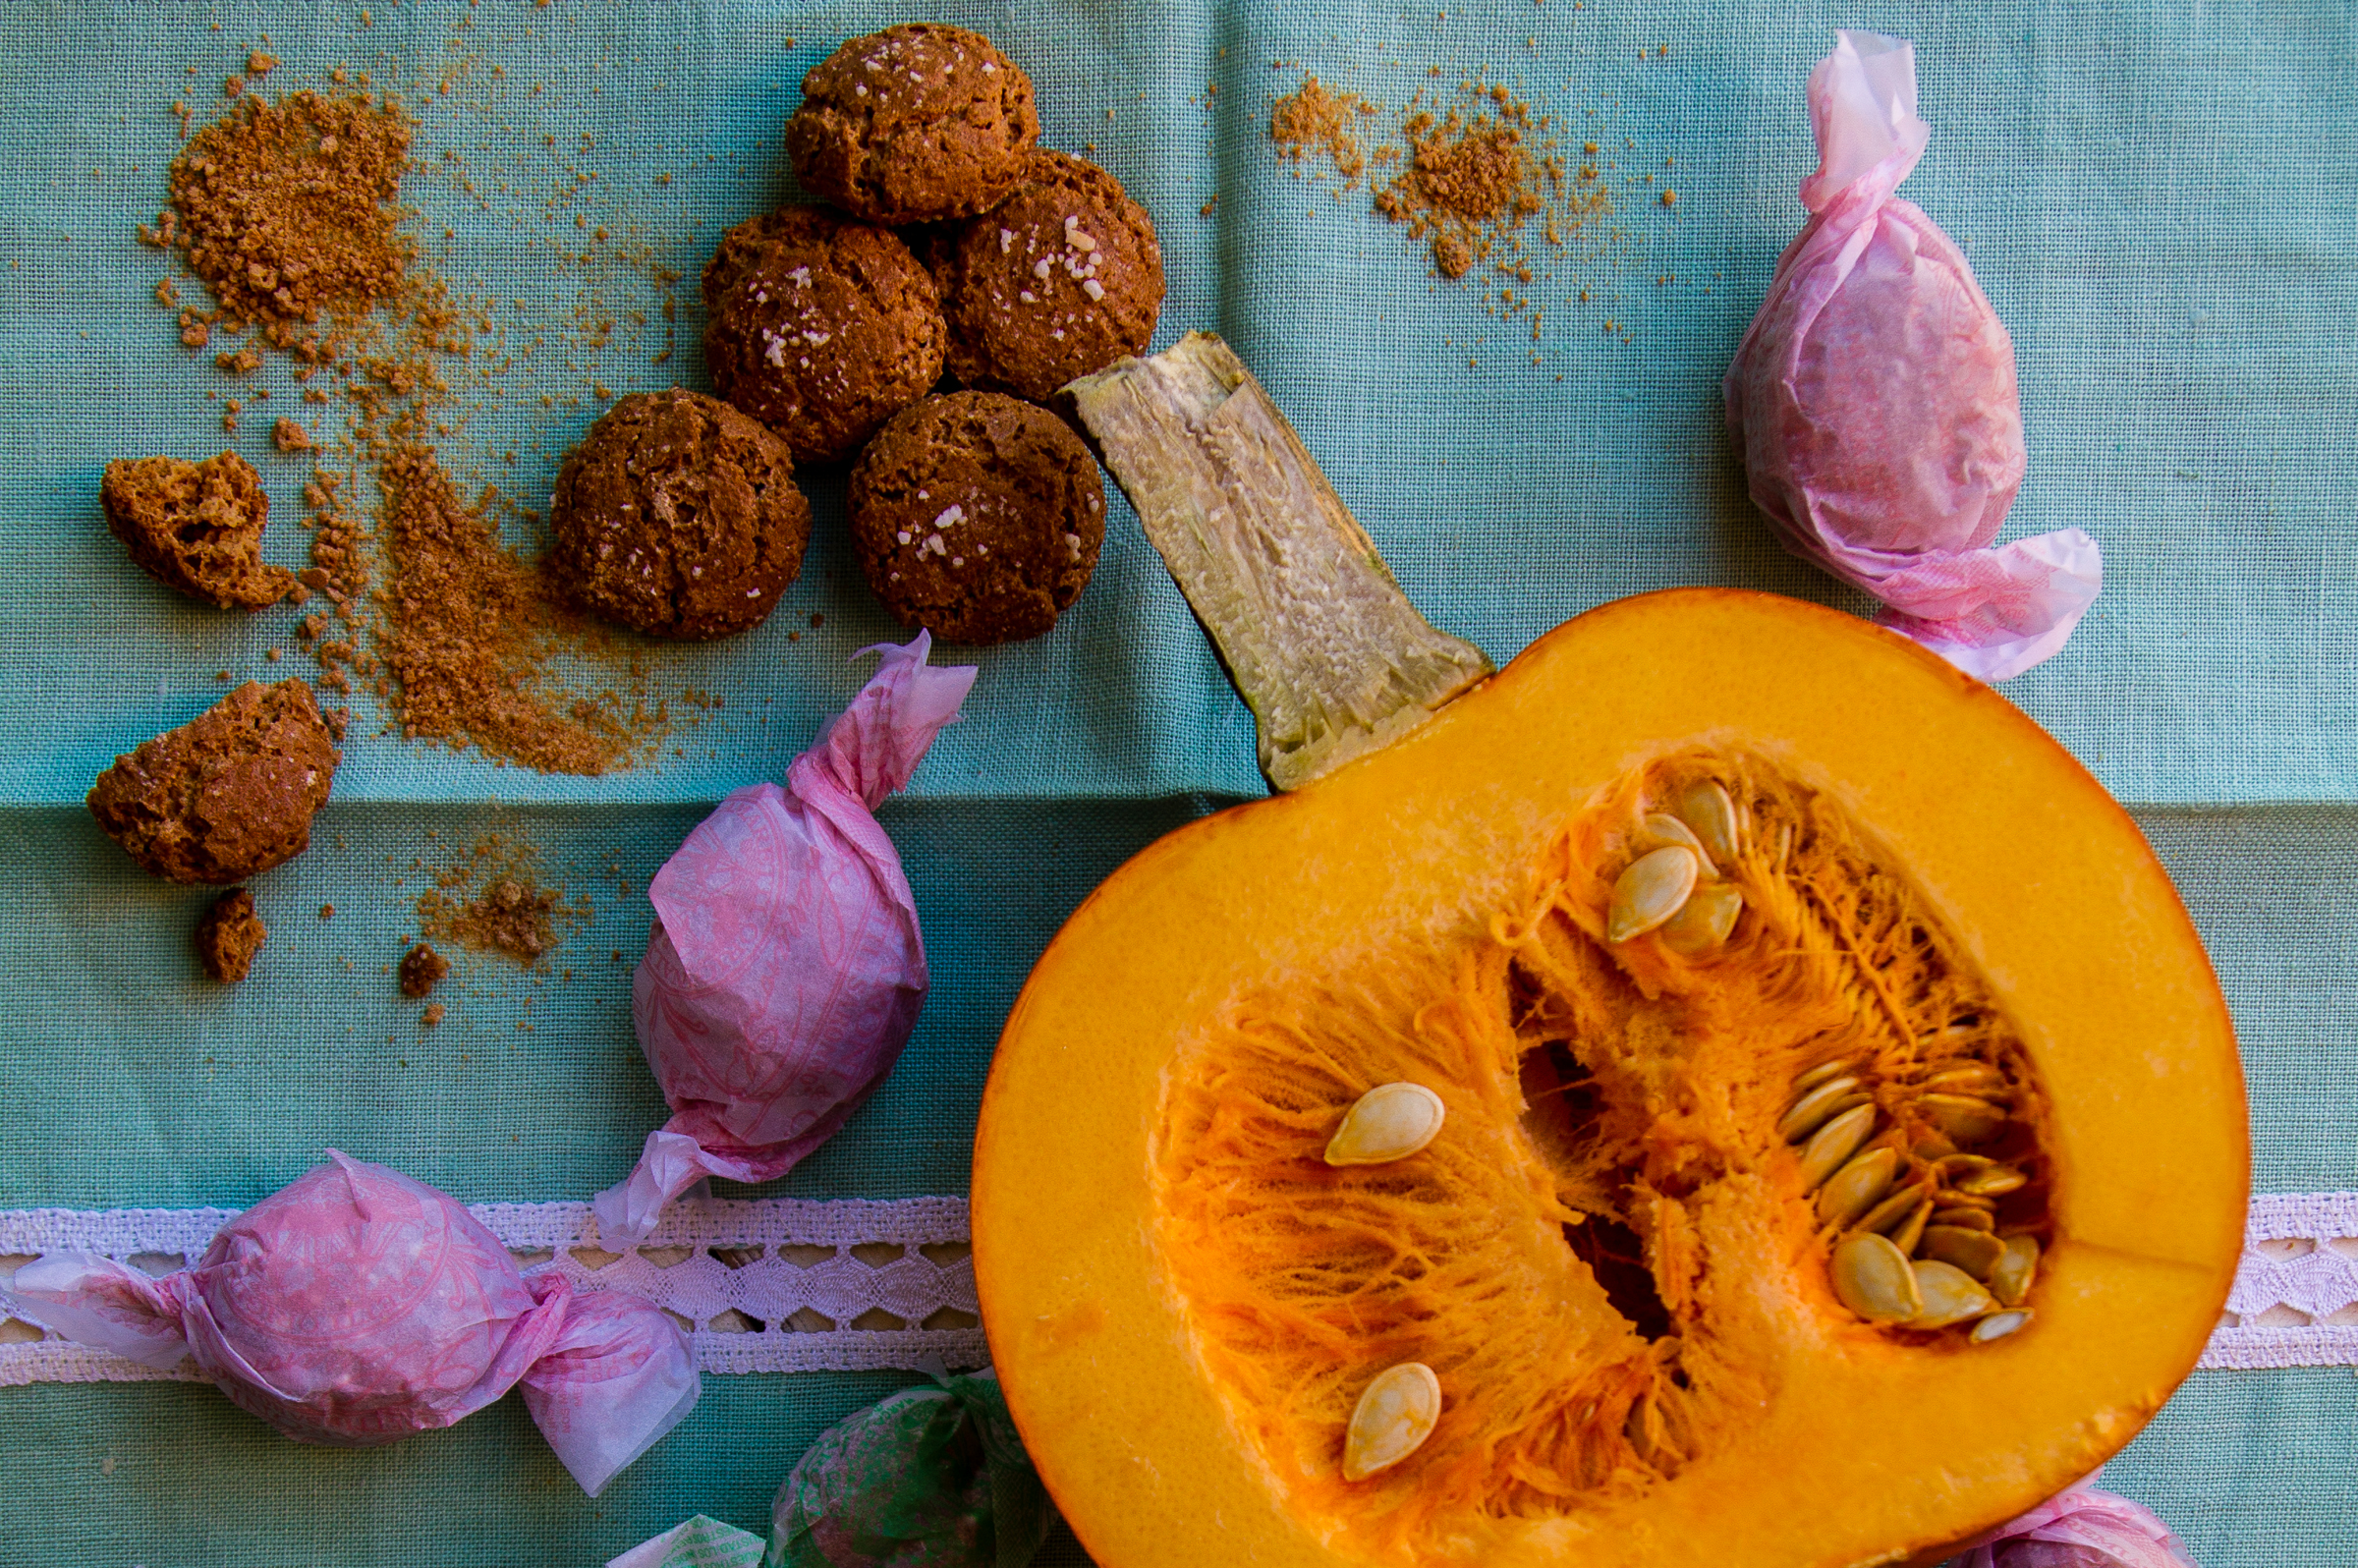 Amaretti_di_Saronno_and_Sugar_Pumpkin.jpg